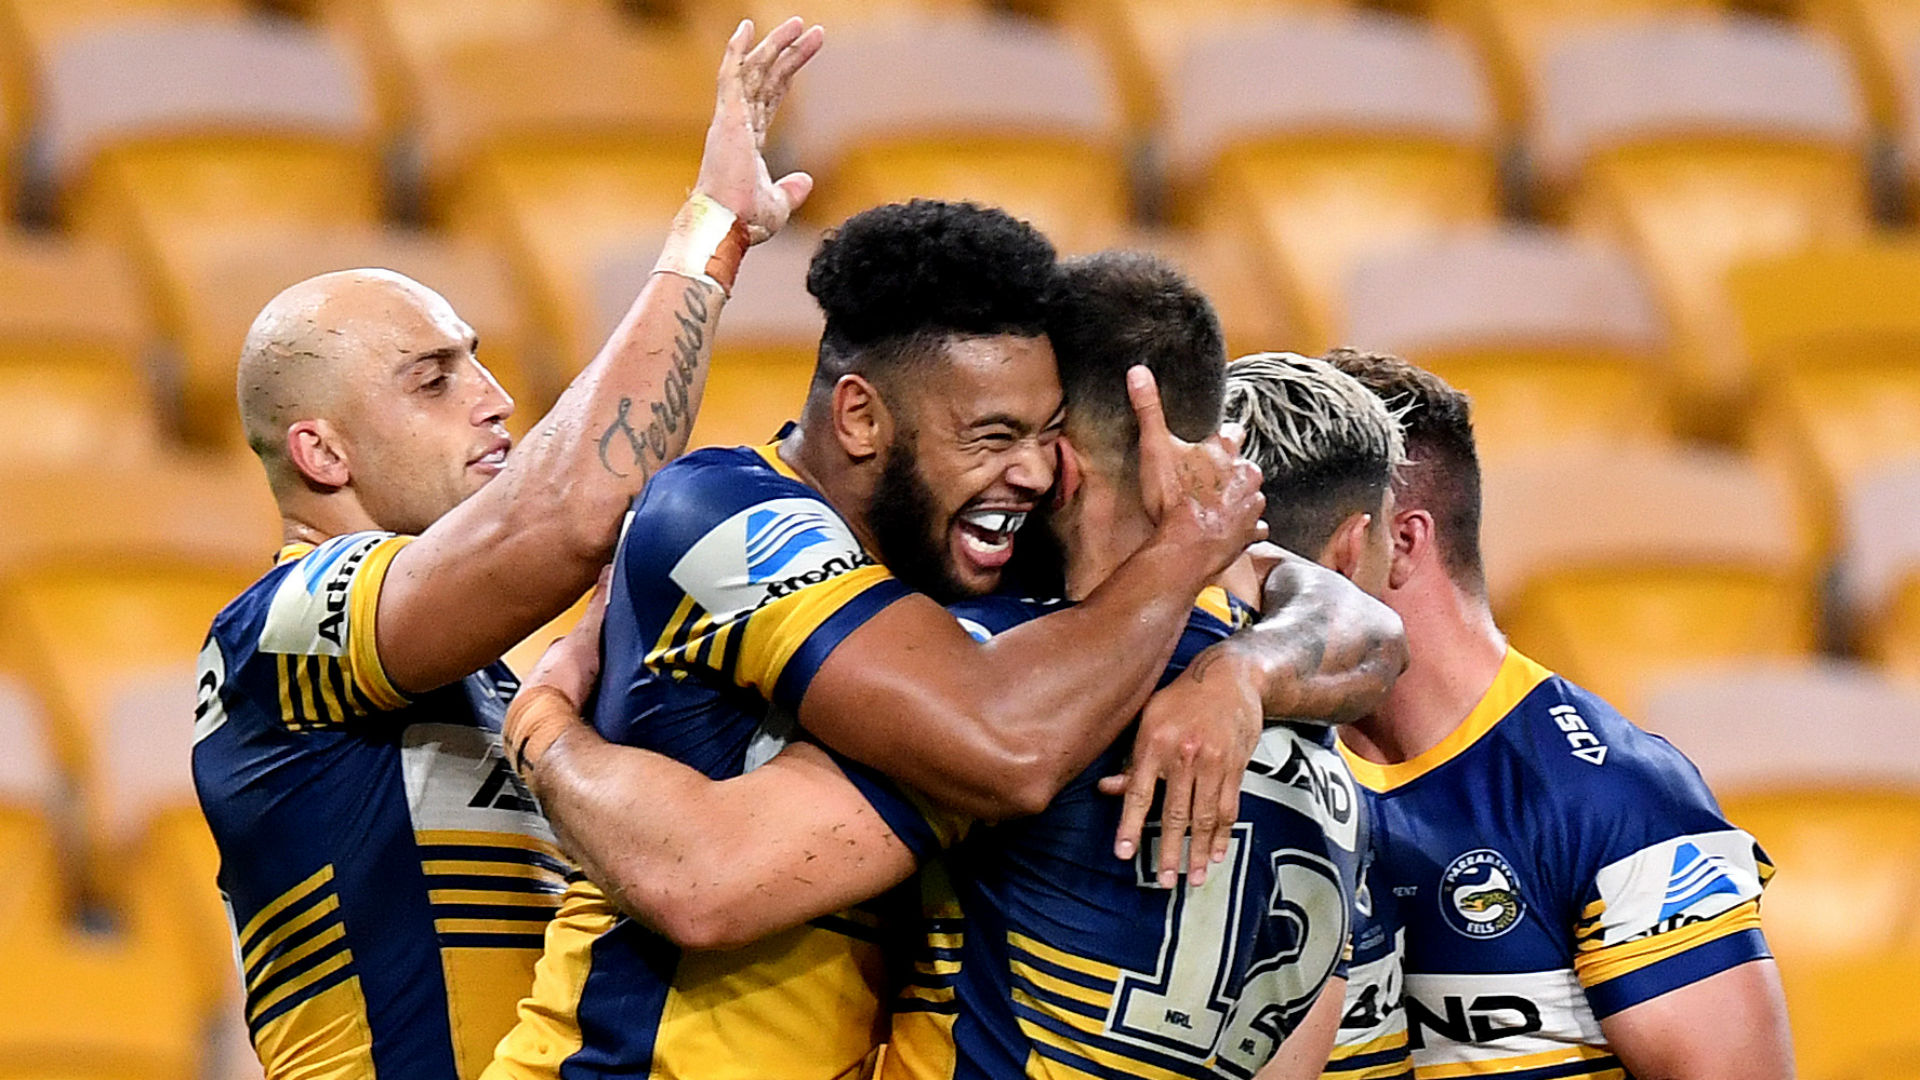 The first game back upon the NRL's resumption saw Parramatta Eels maintain their 100 per cent start by beating Brisbane Broncos.